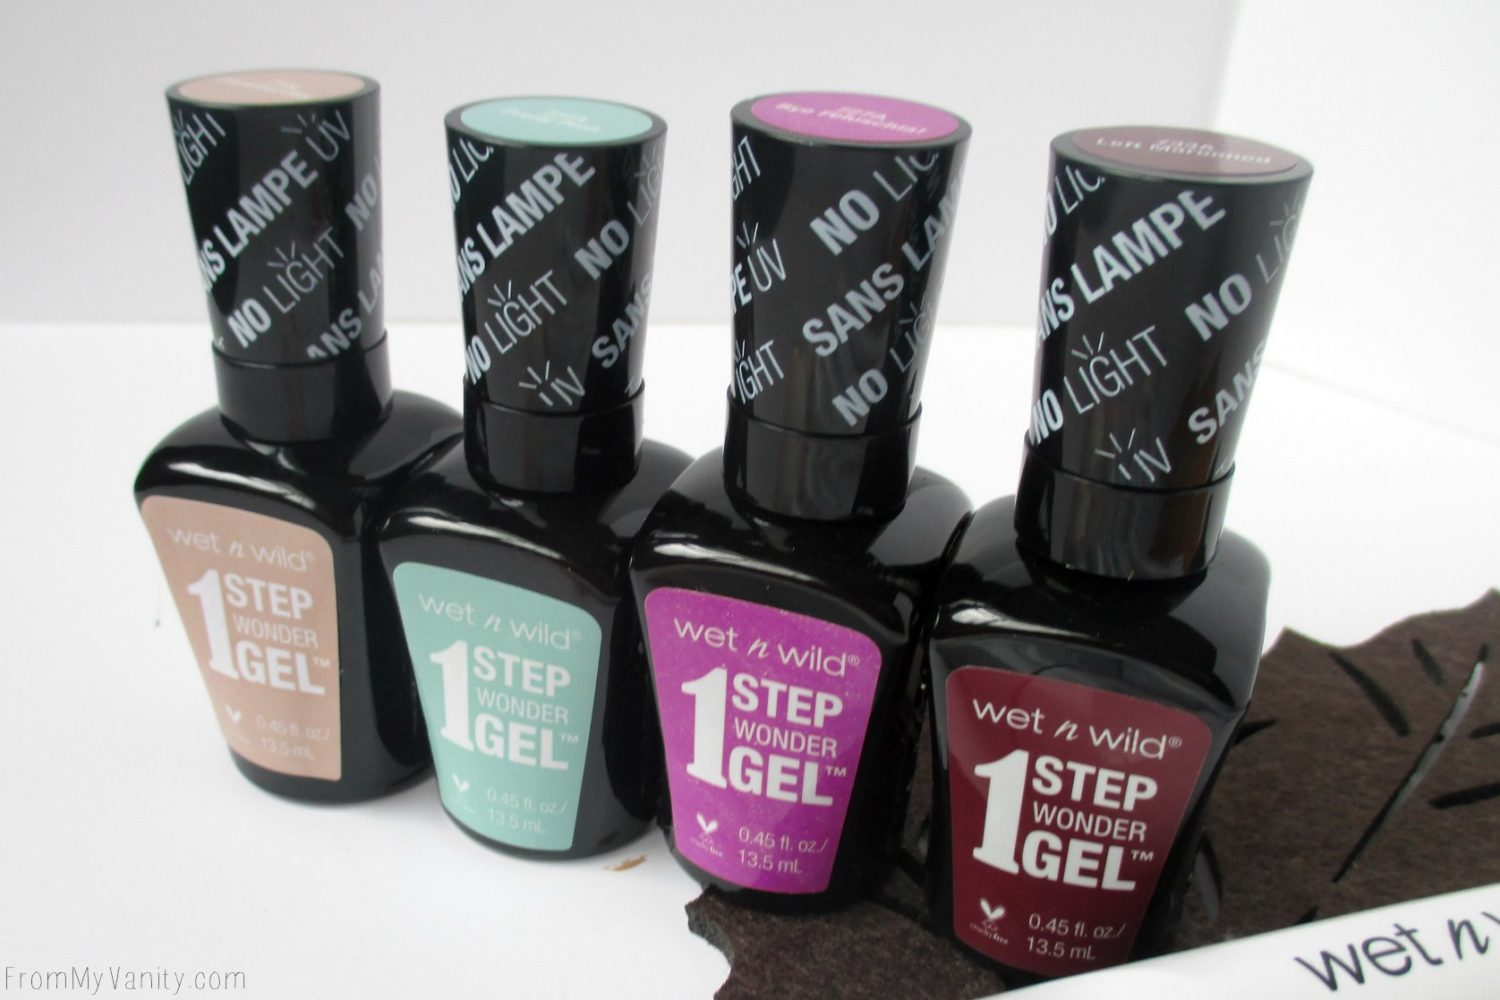 New Products from Wet n Wild - Hits & Misses - From My Vanity